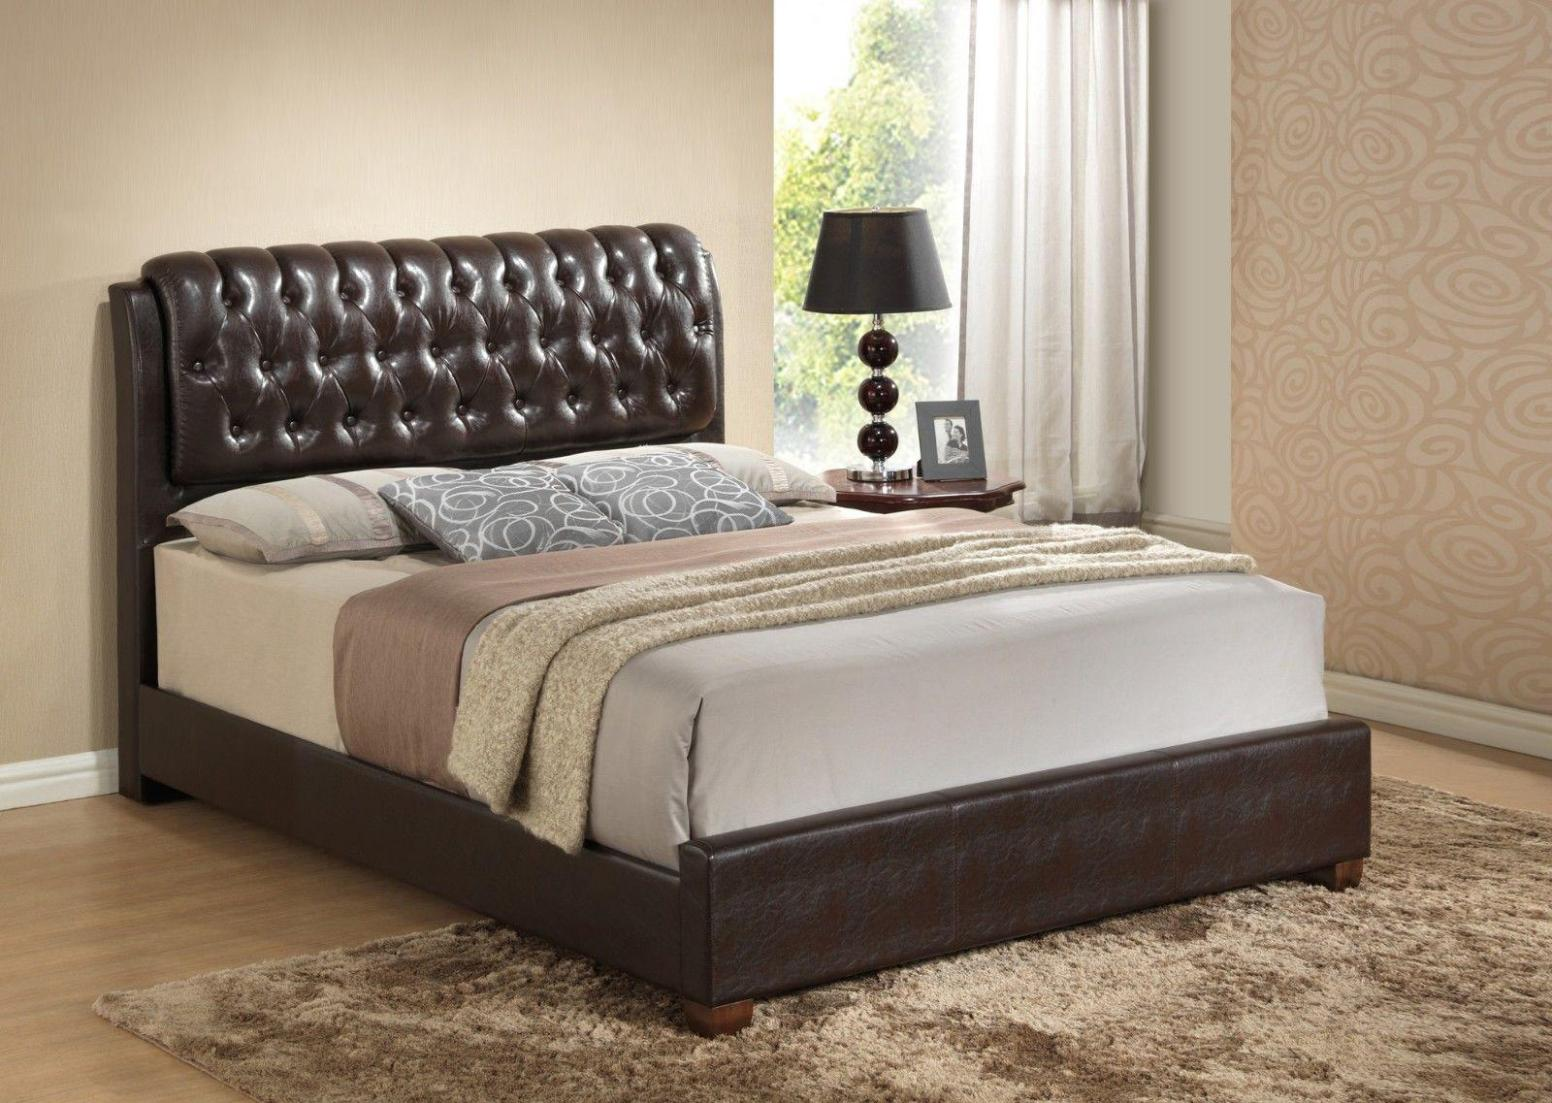 Image of: Tufted Headboard With Frame